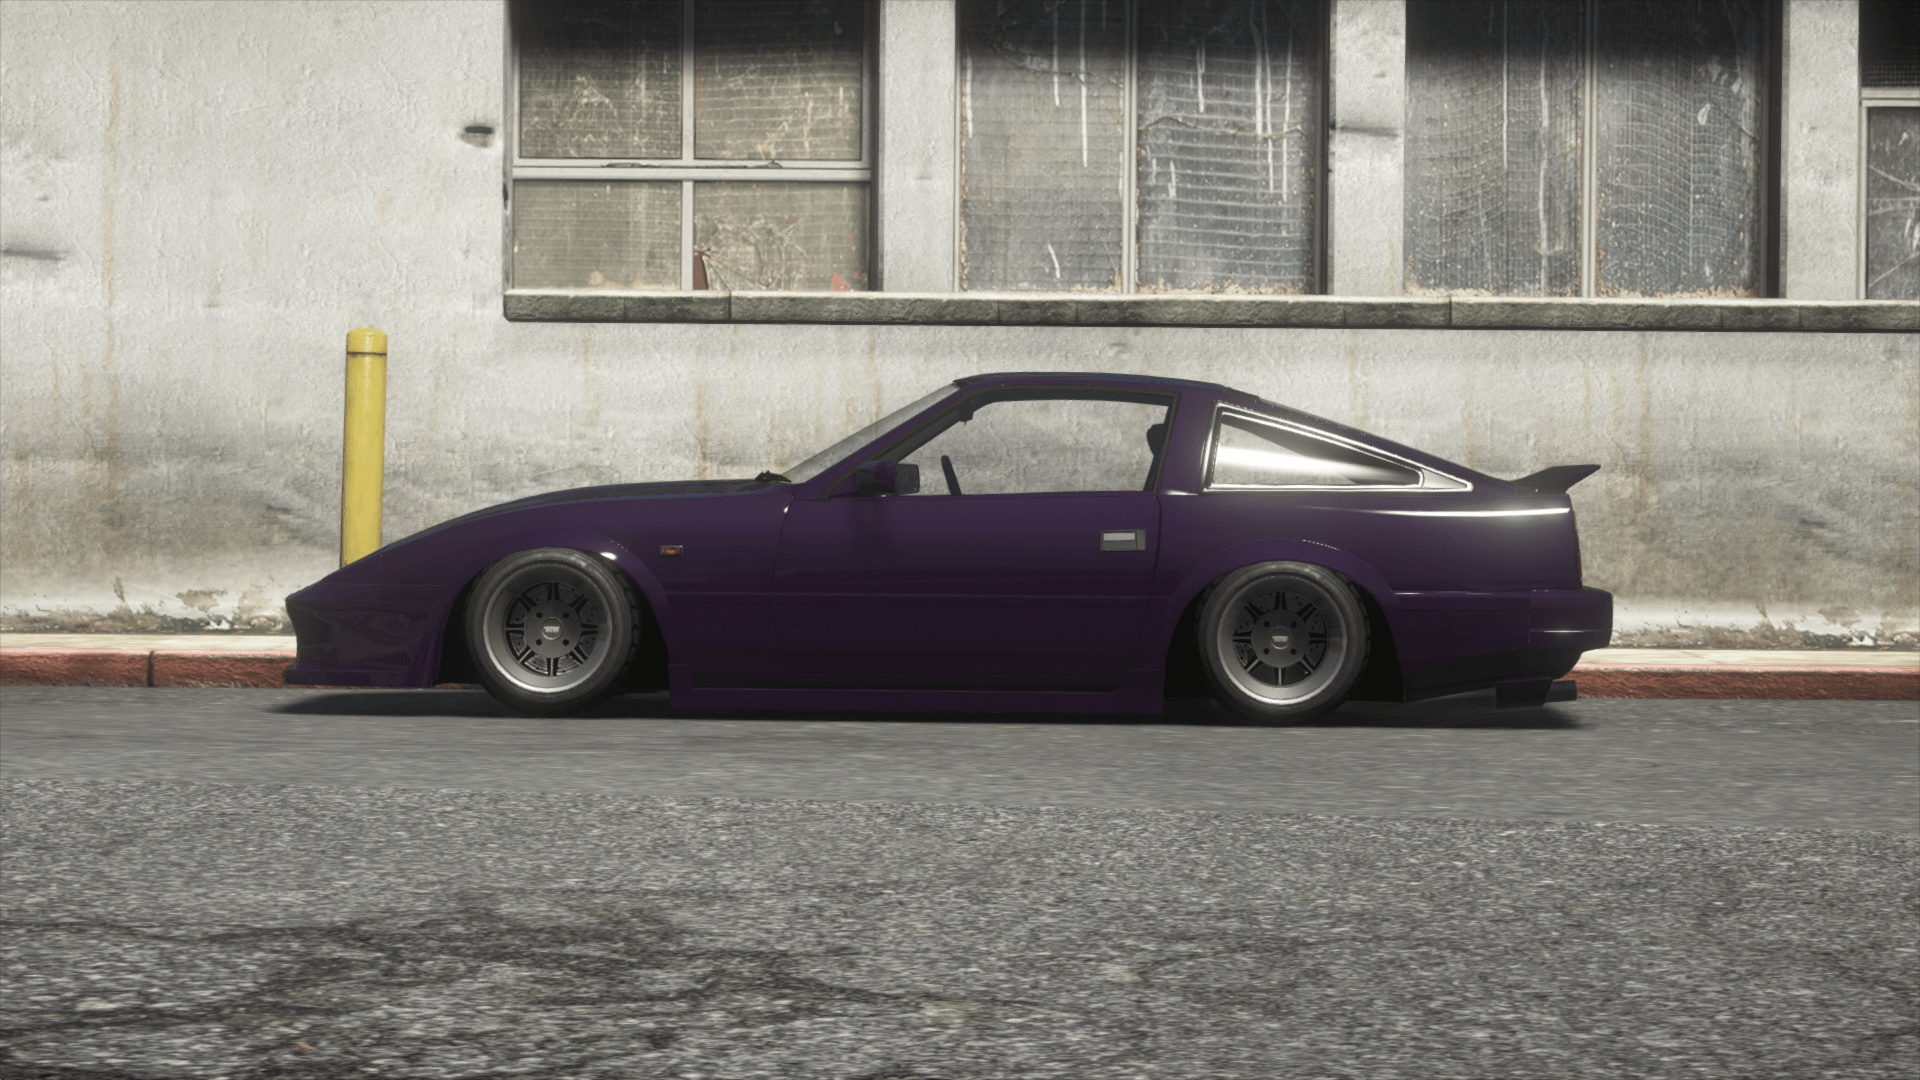 Nissan 300zx Z31 [Add-On|Tuning|Template] - GTA5-Mods com